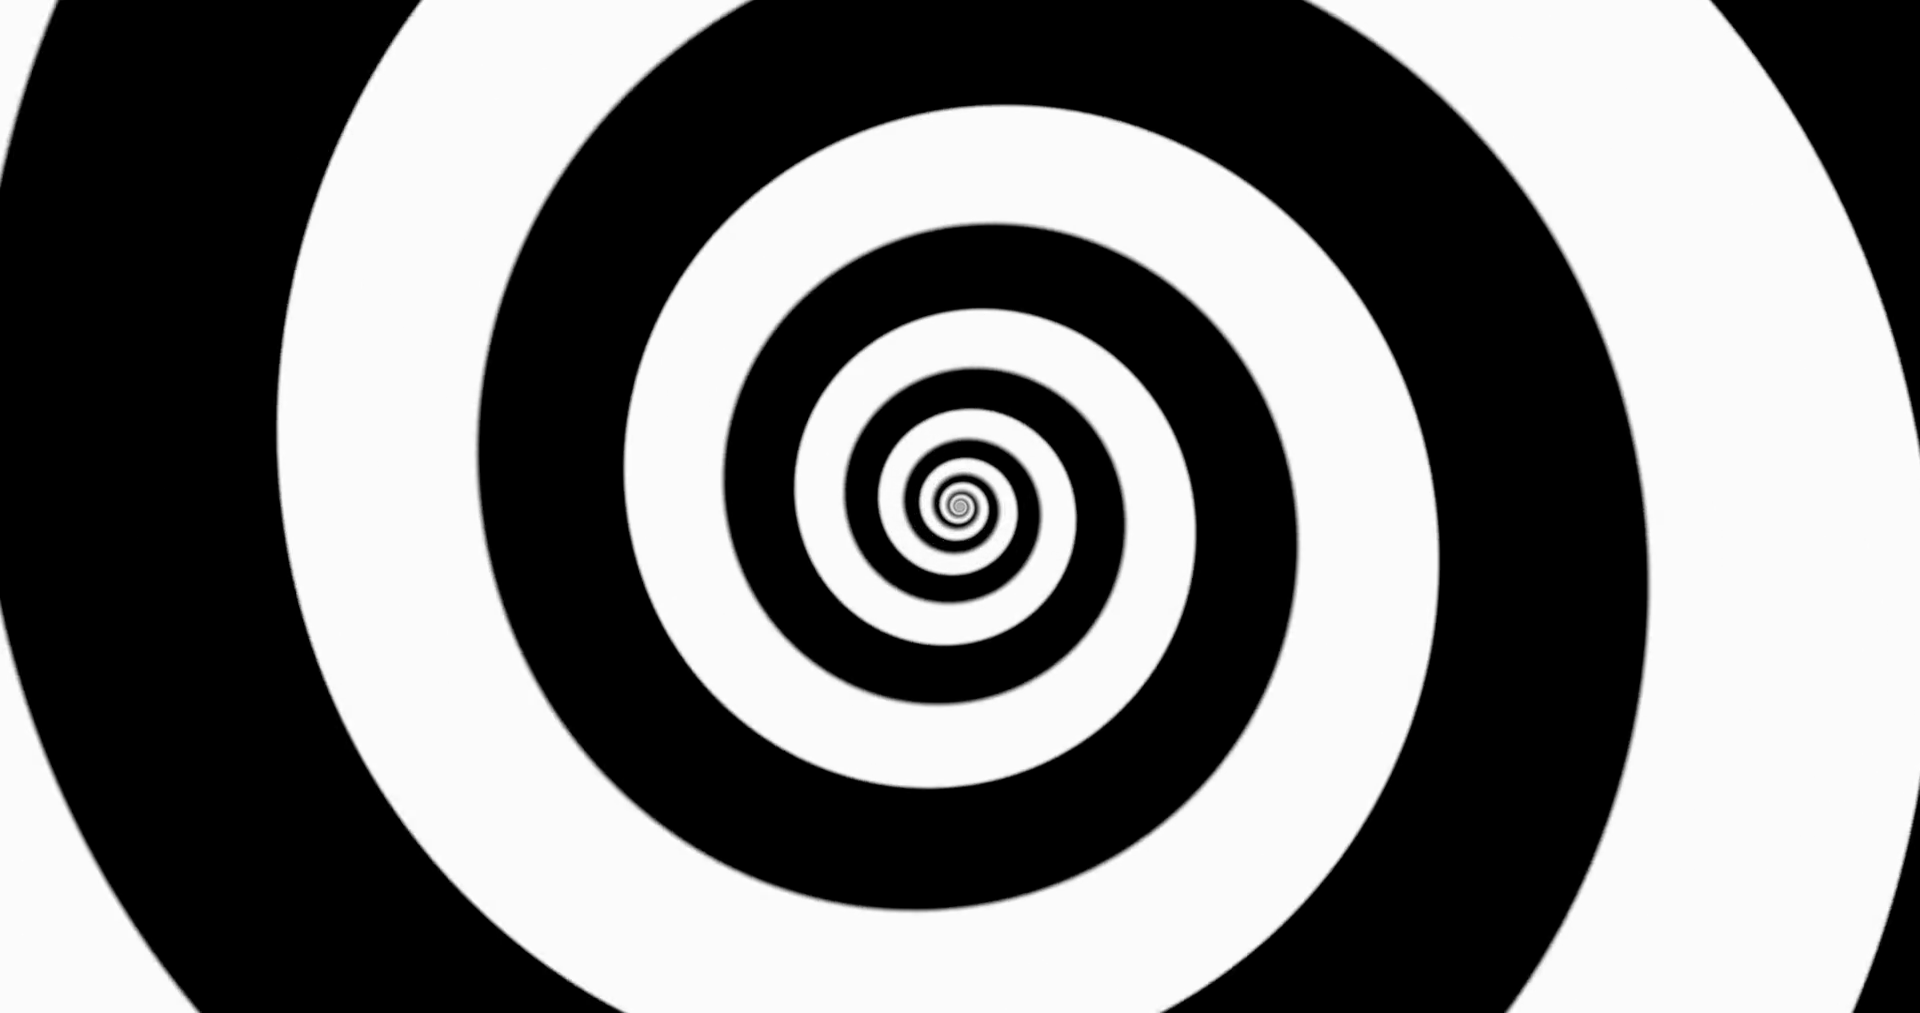 Hypnotic black and white zooming spiral - seamless looping ...